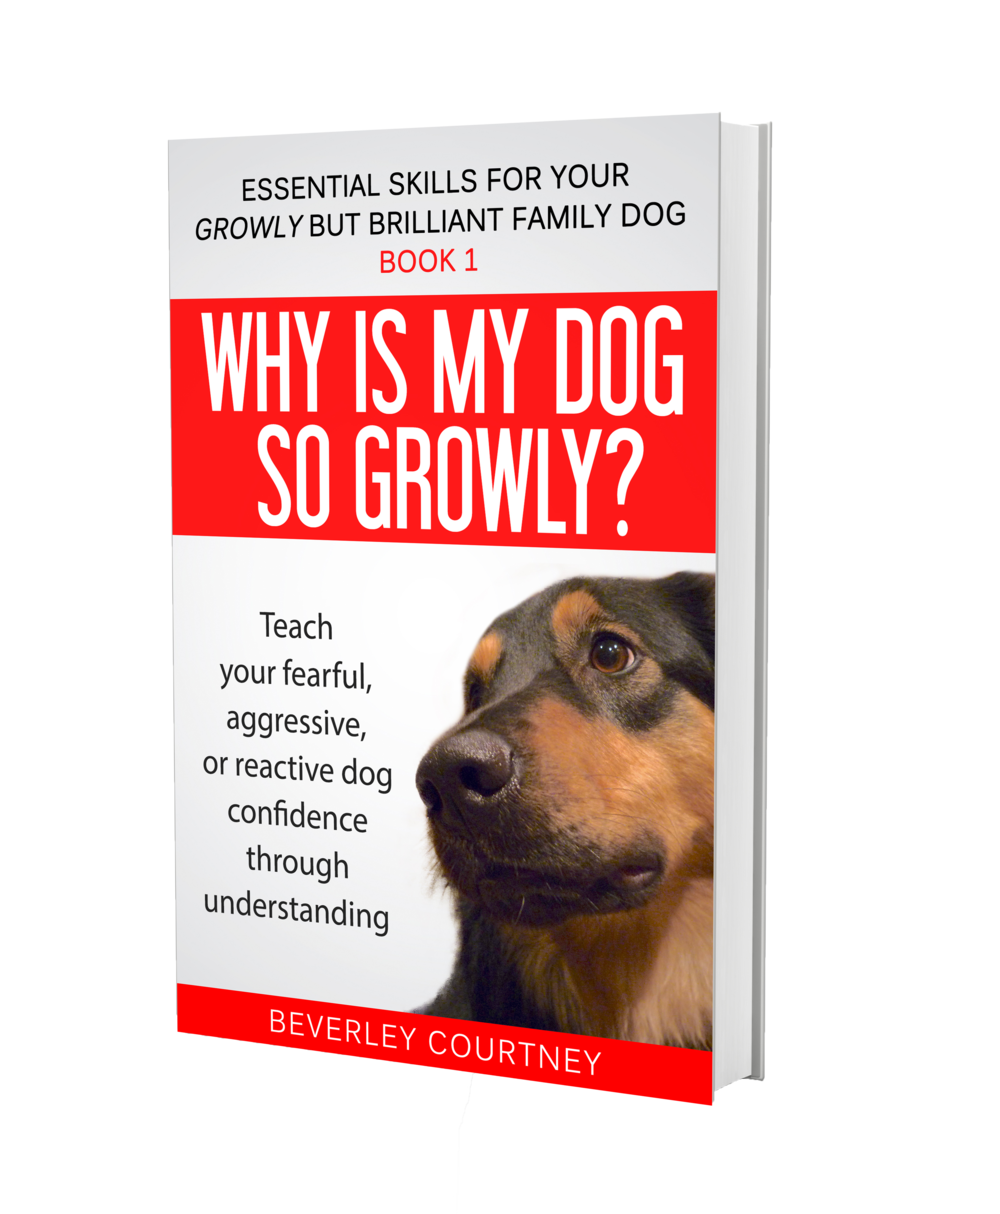 Why is my Dog so Growly? Book 1